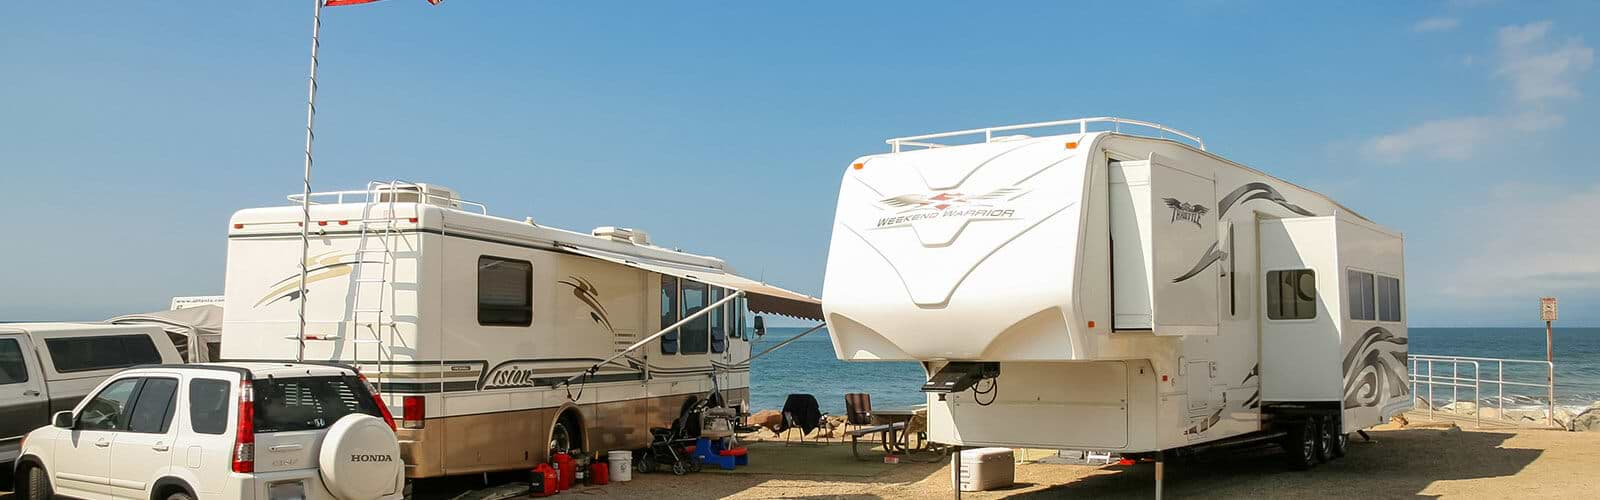 Recreational Vehicle Or Travel Trailer